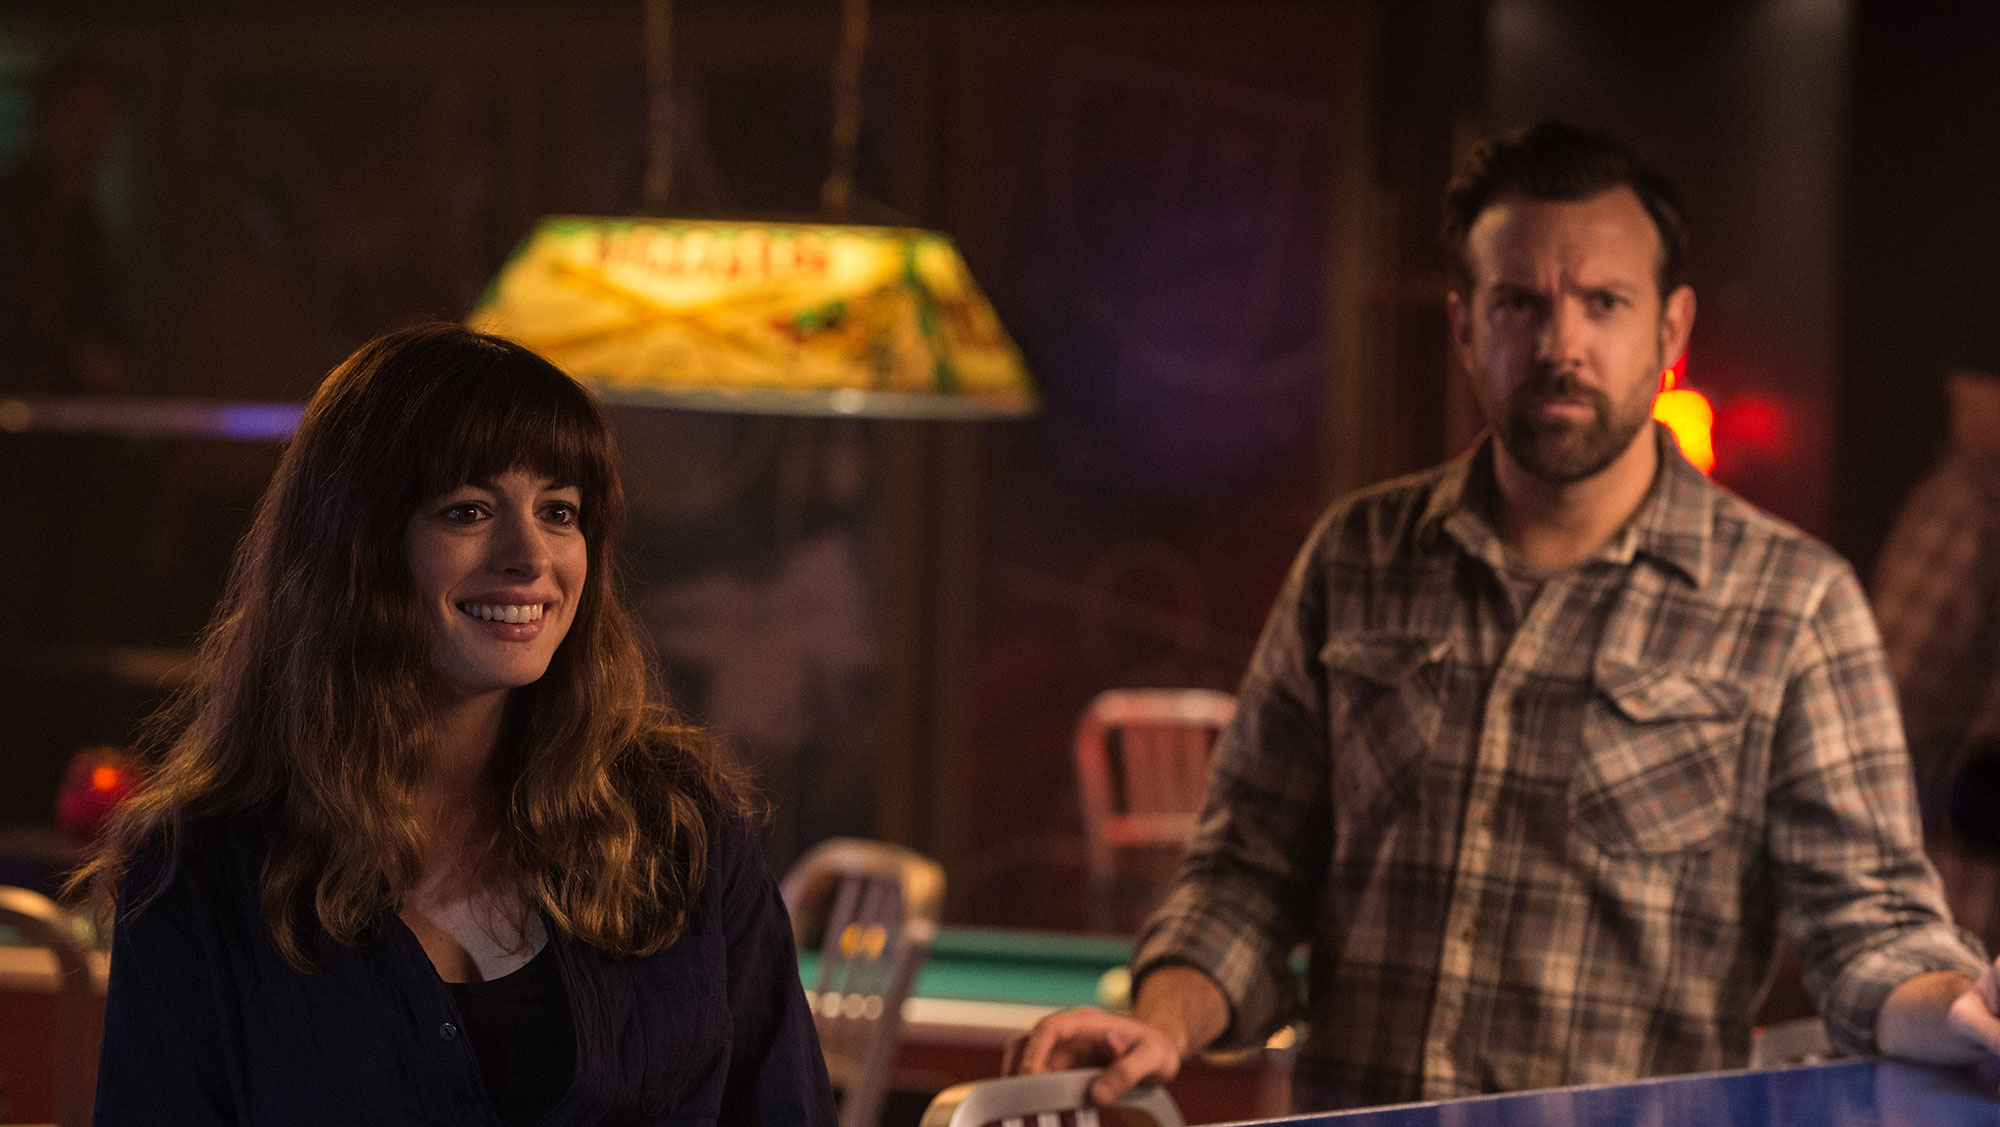 Colossal: A head-scratching high-concept film